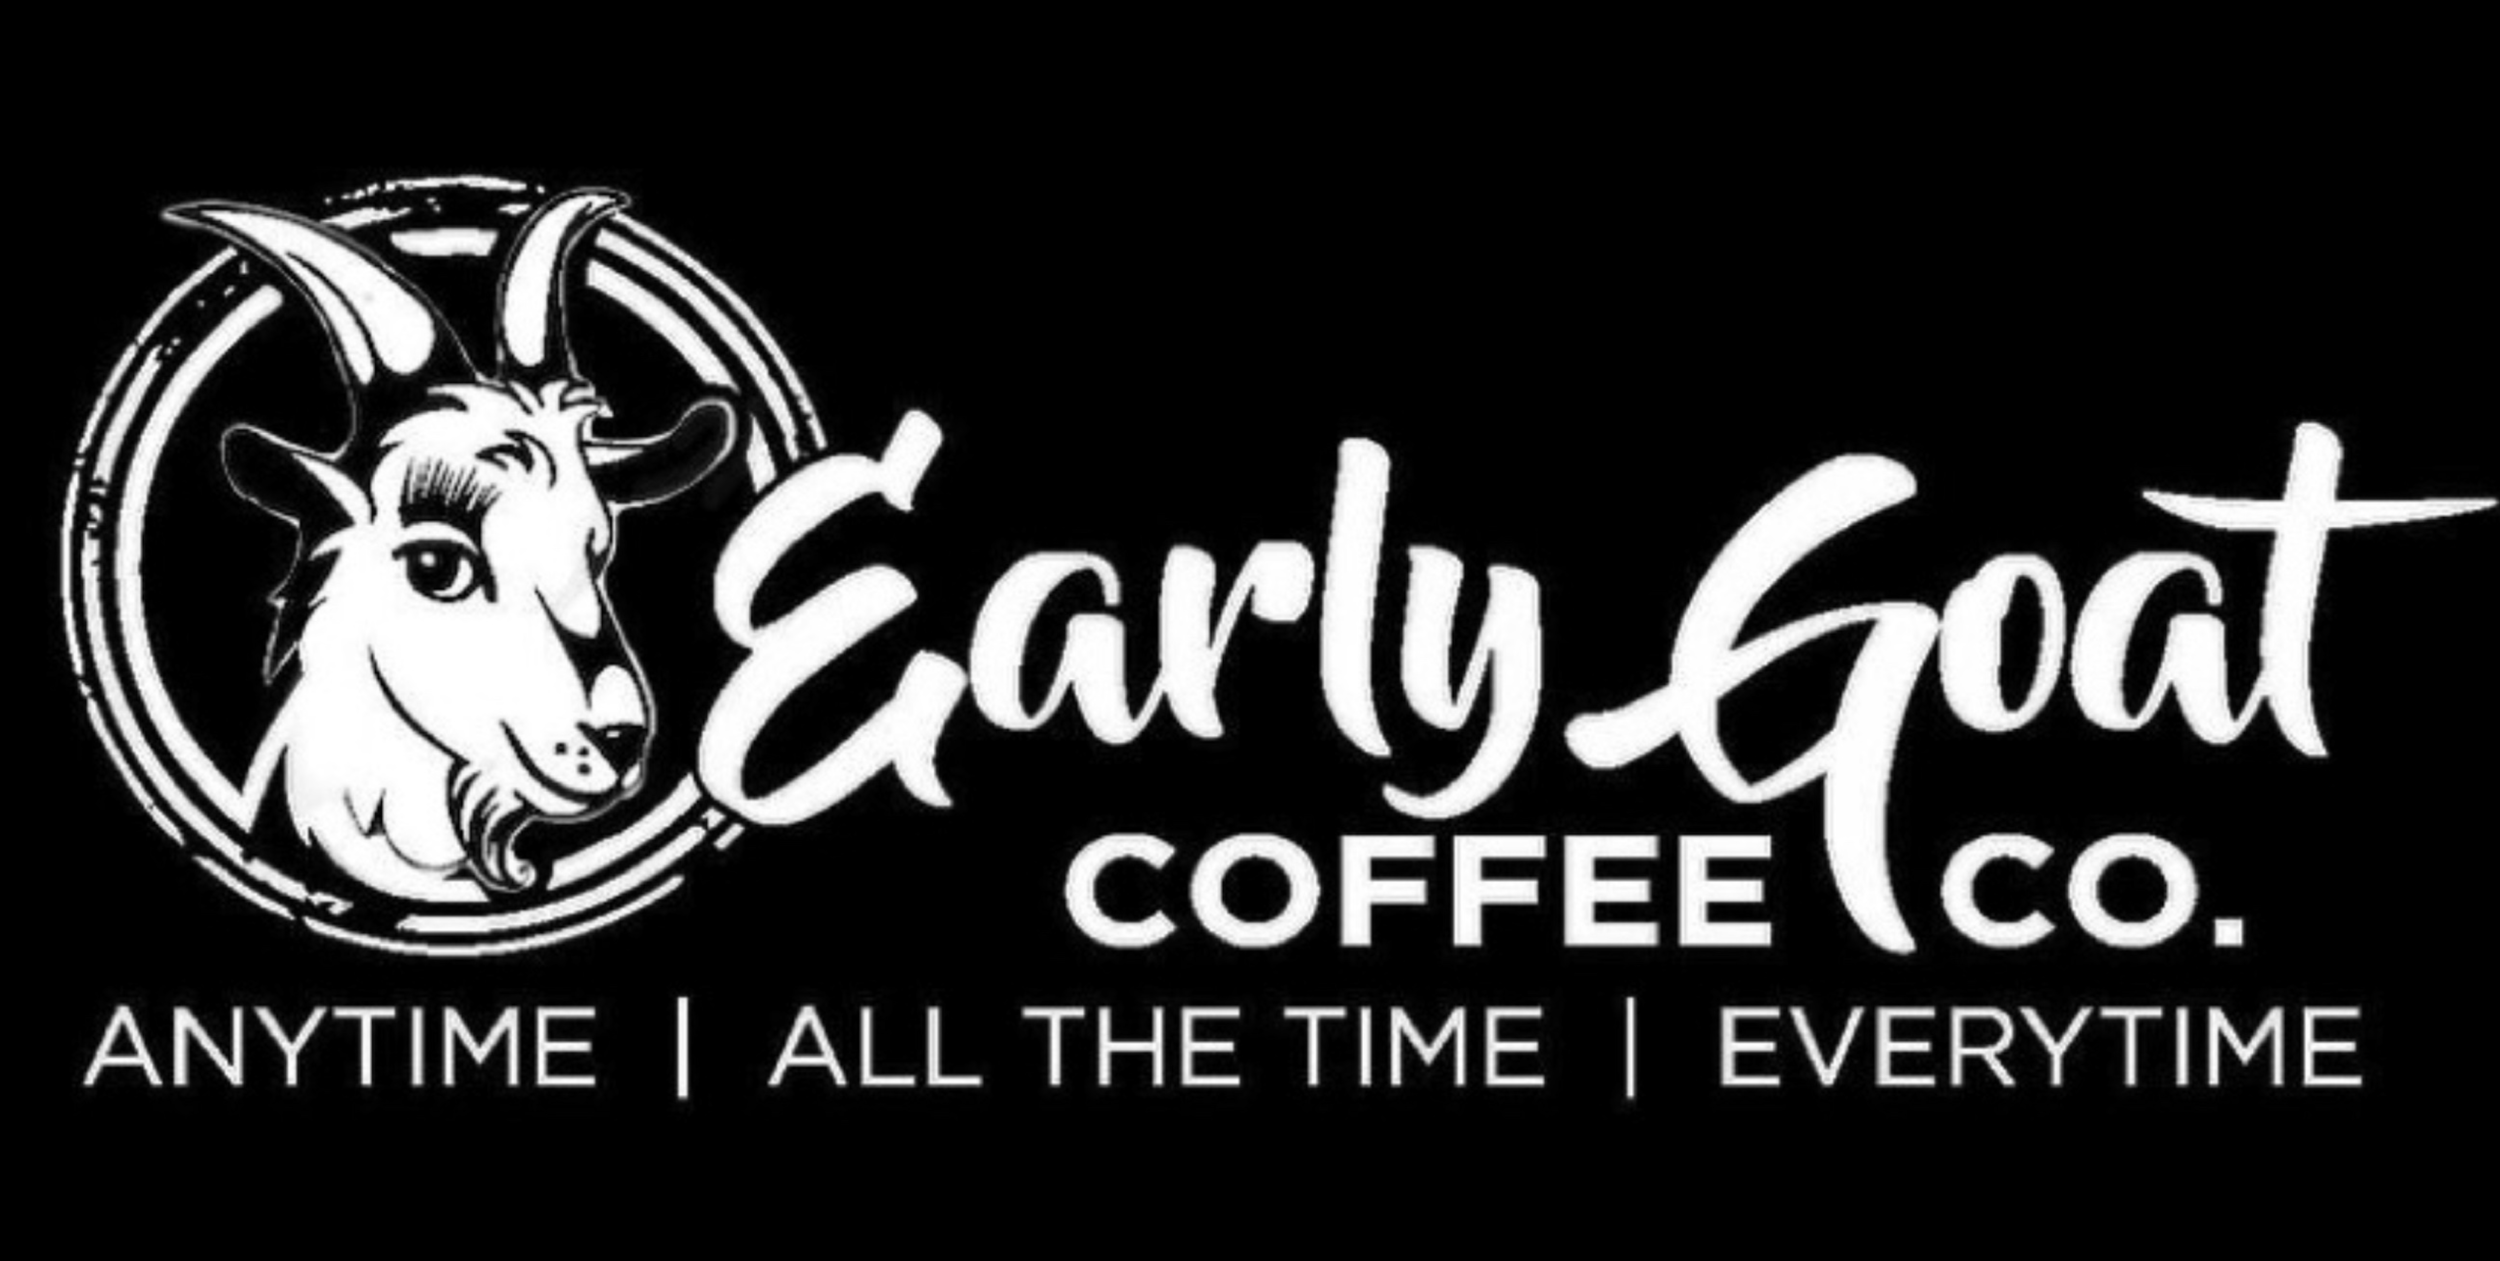 Early Goat - Early Goat Coffee Co.png